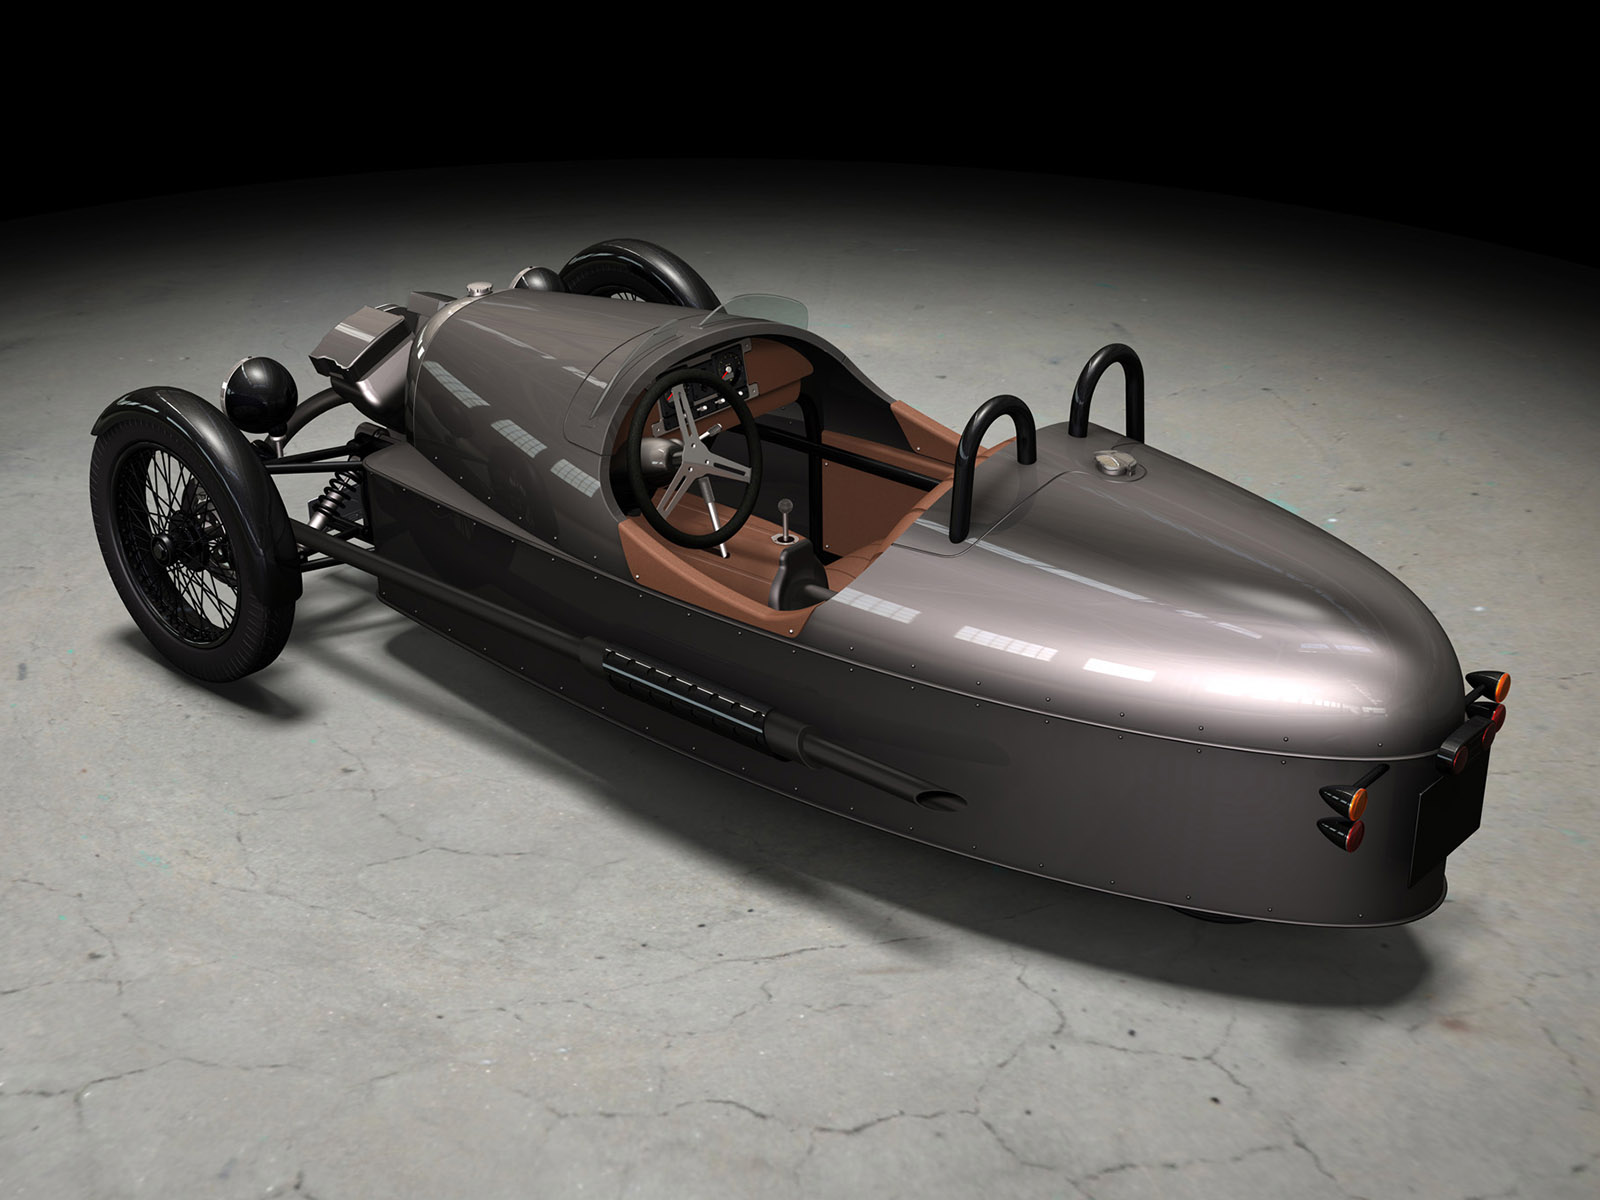 Morgan Threewheeler Concept (2010)